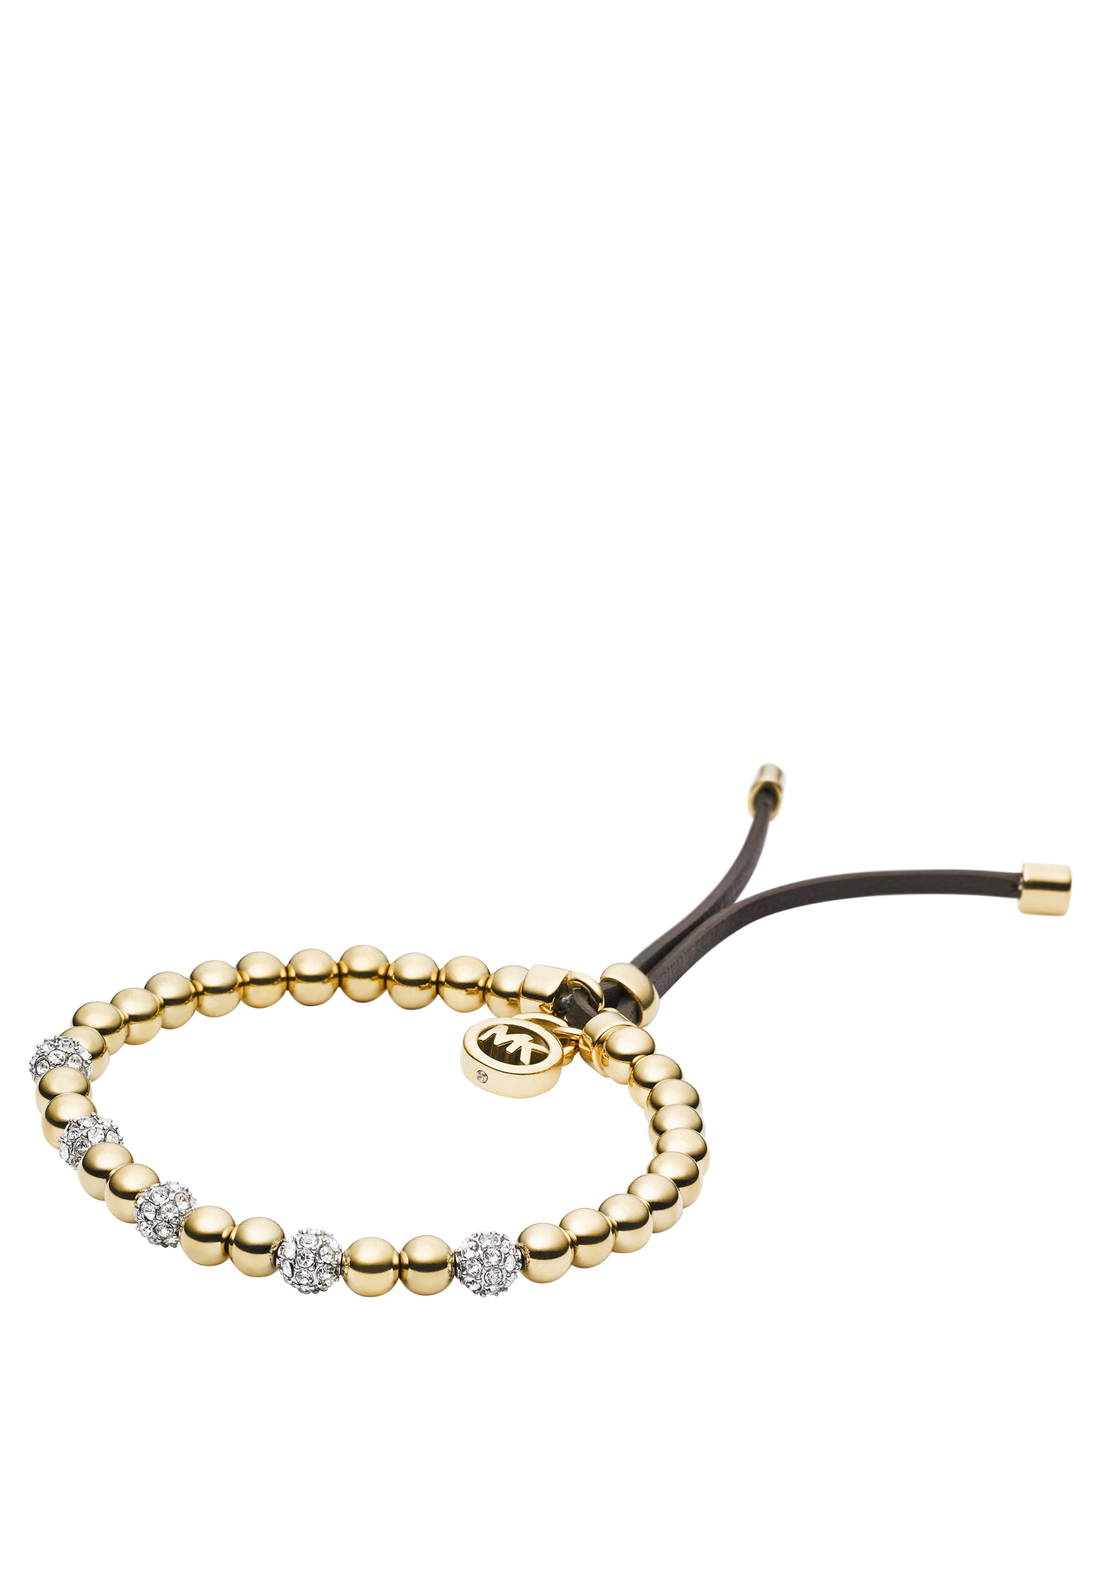 Michael Kors Womens Beaded Bracelet, Gold